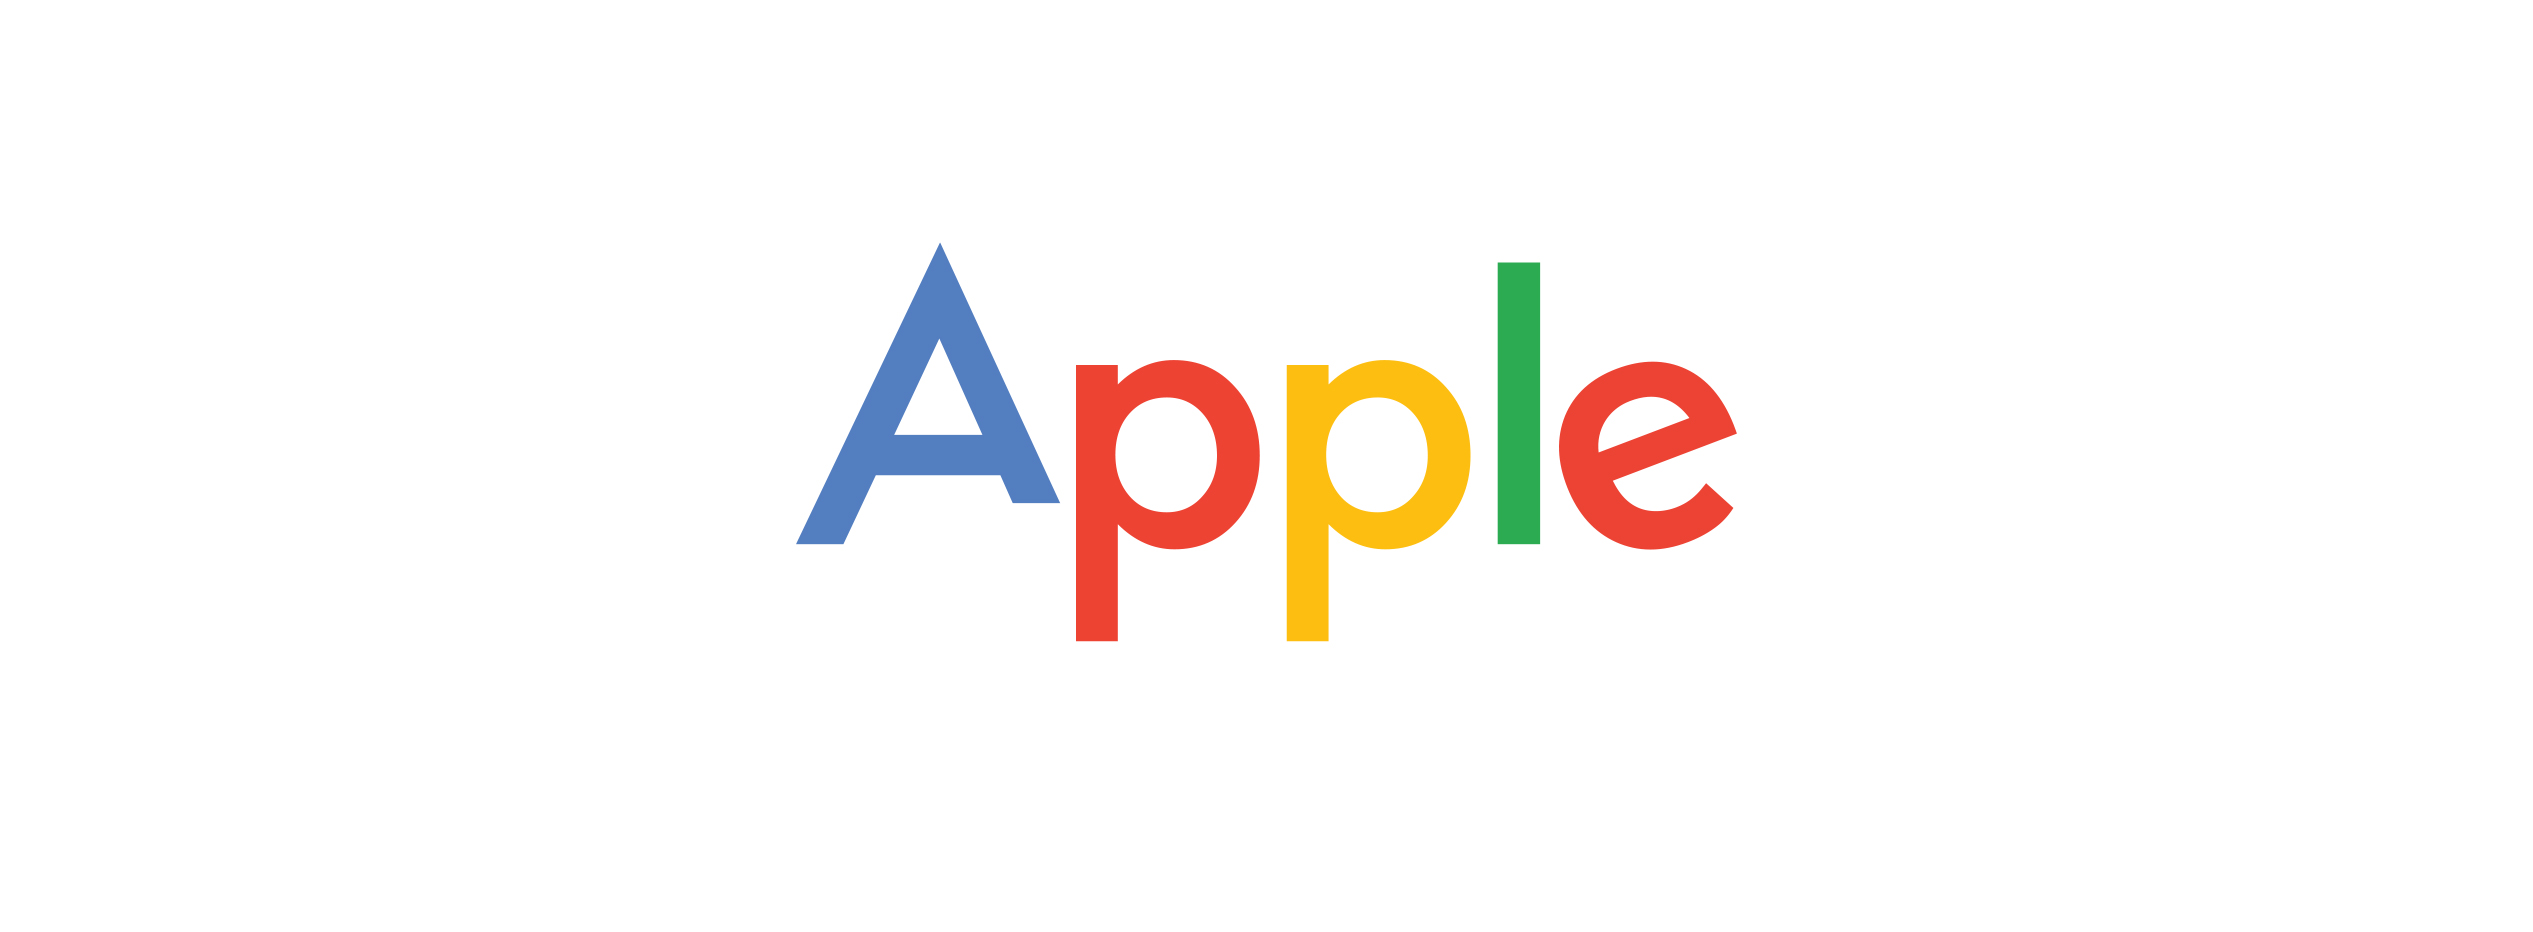 Apple new logo has much faster adoption rate than Goolge new one